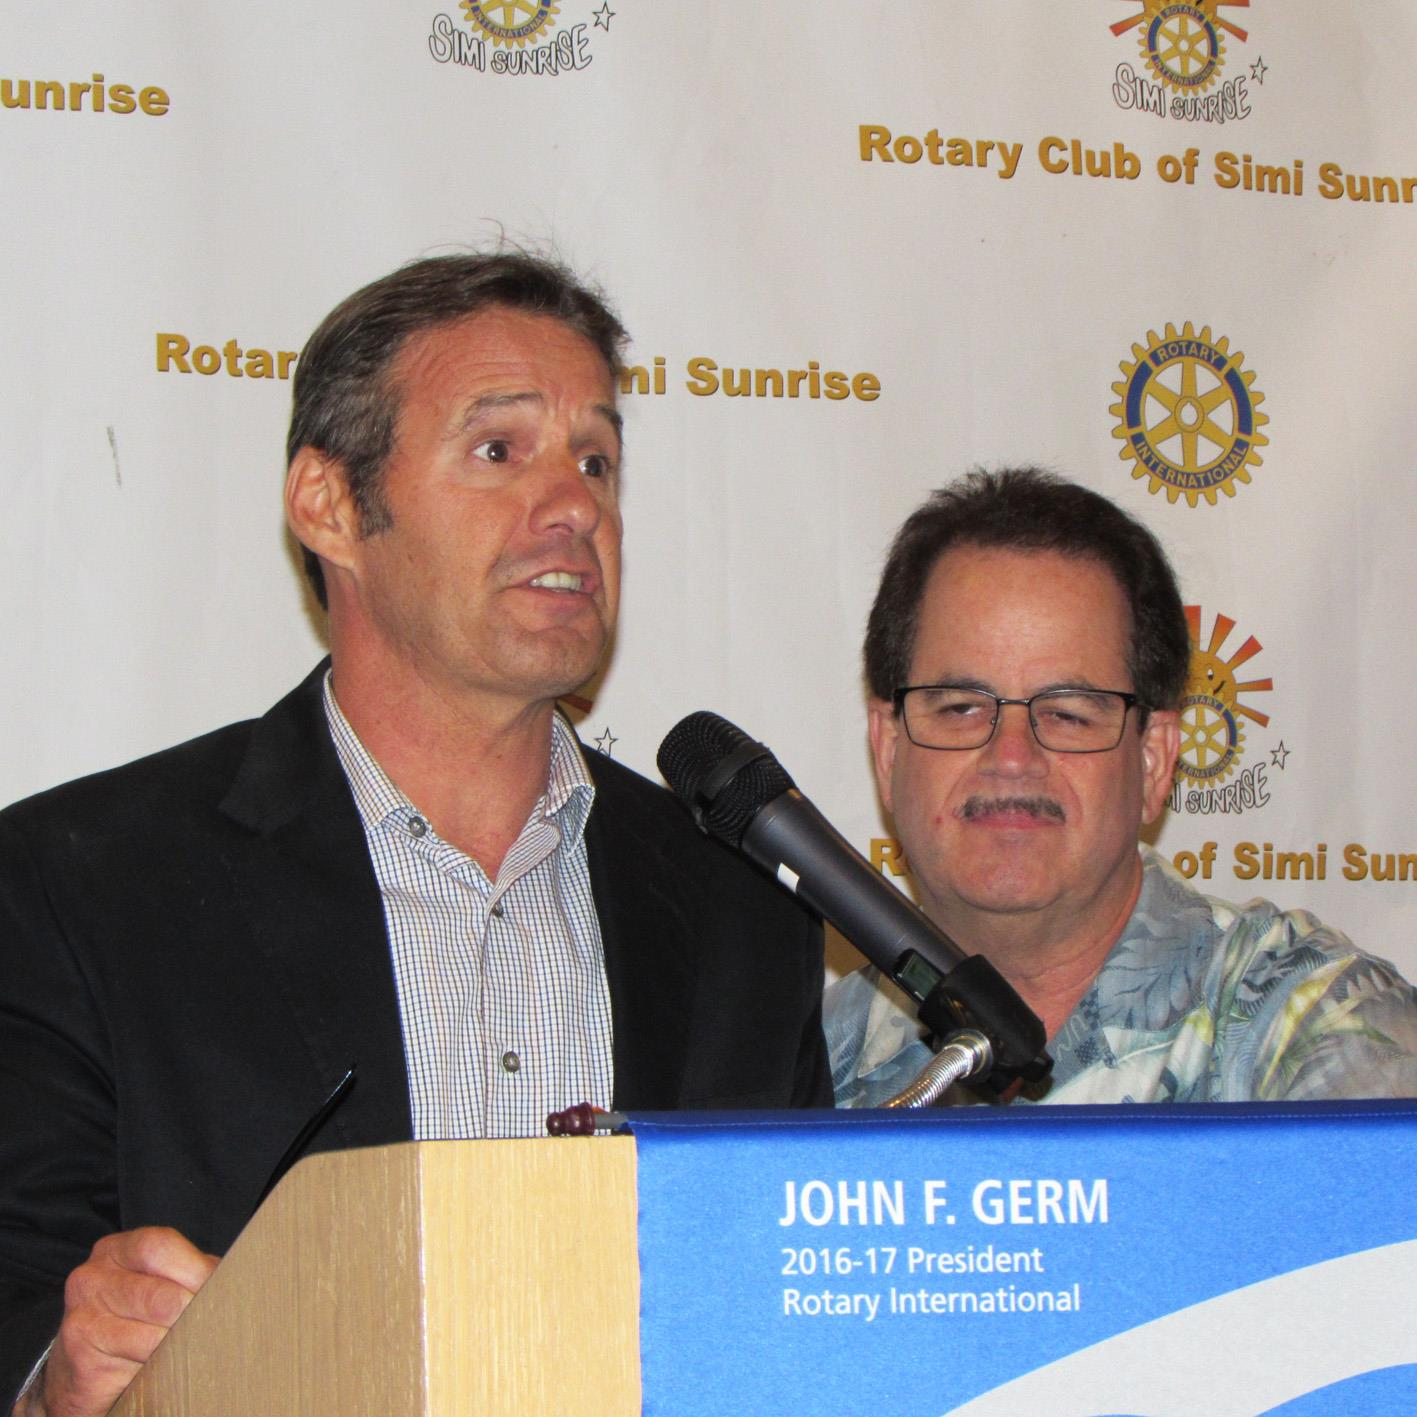 Rotary Club of Simi Sunrise Bulletin - August 18, 2016 (Aug